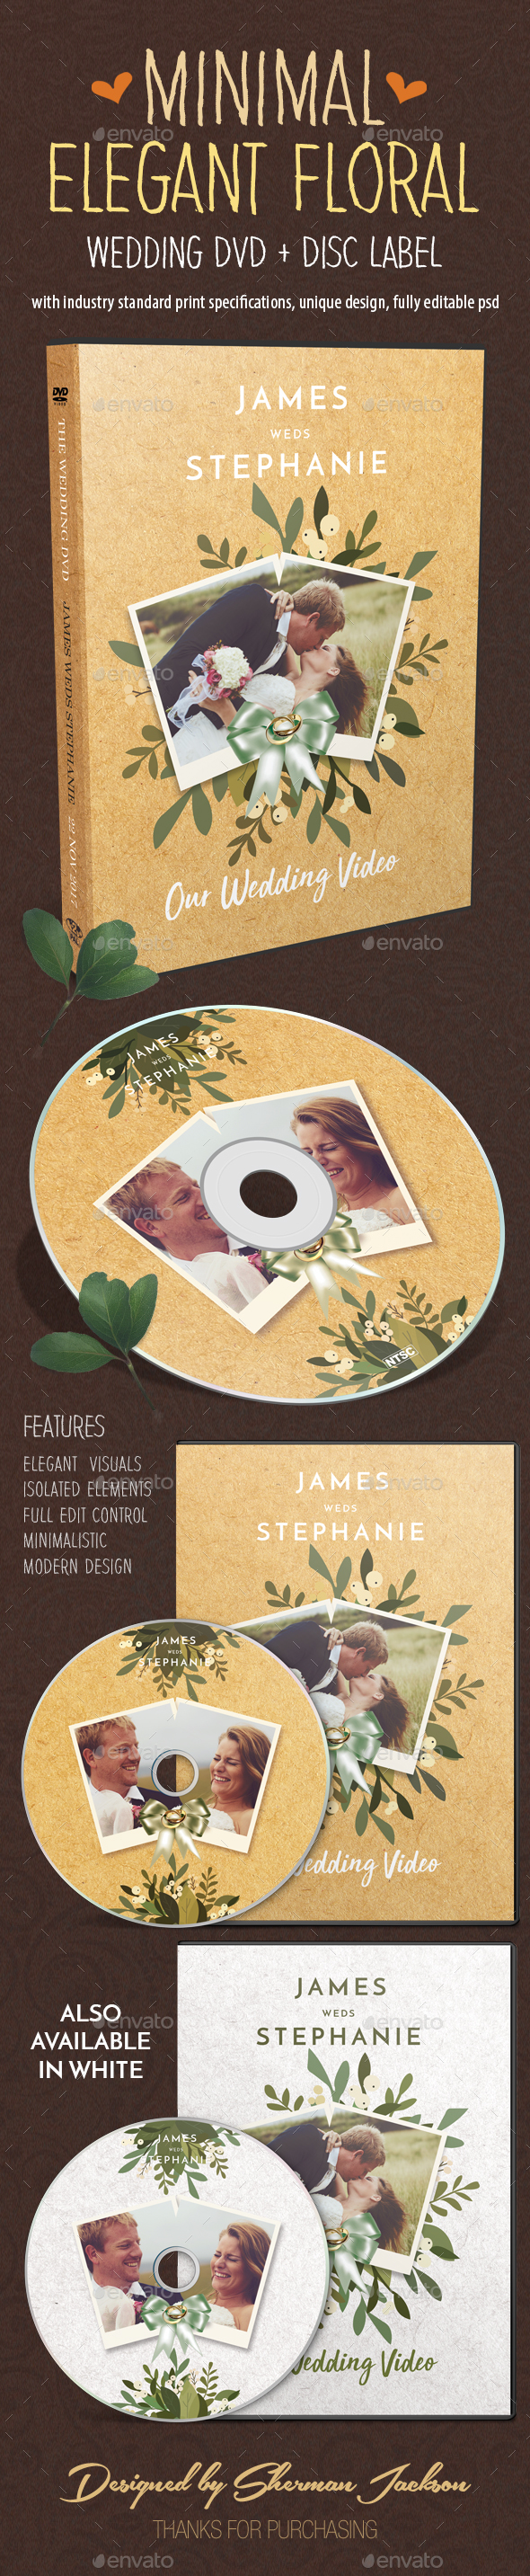 GraphicRiver Minimal Elegant Floral Wedding DVD Covers 20937904